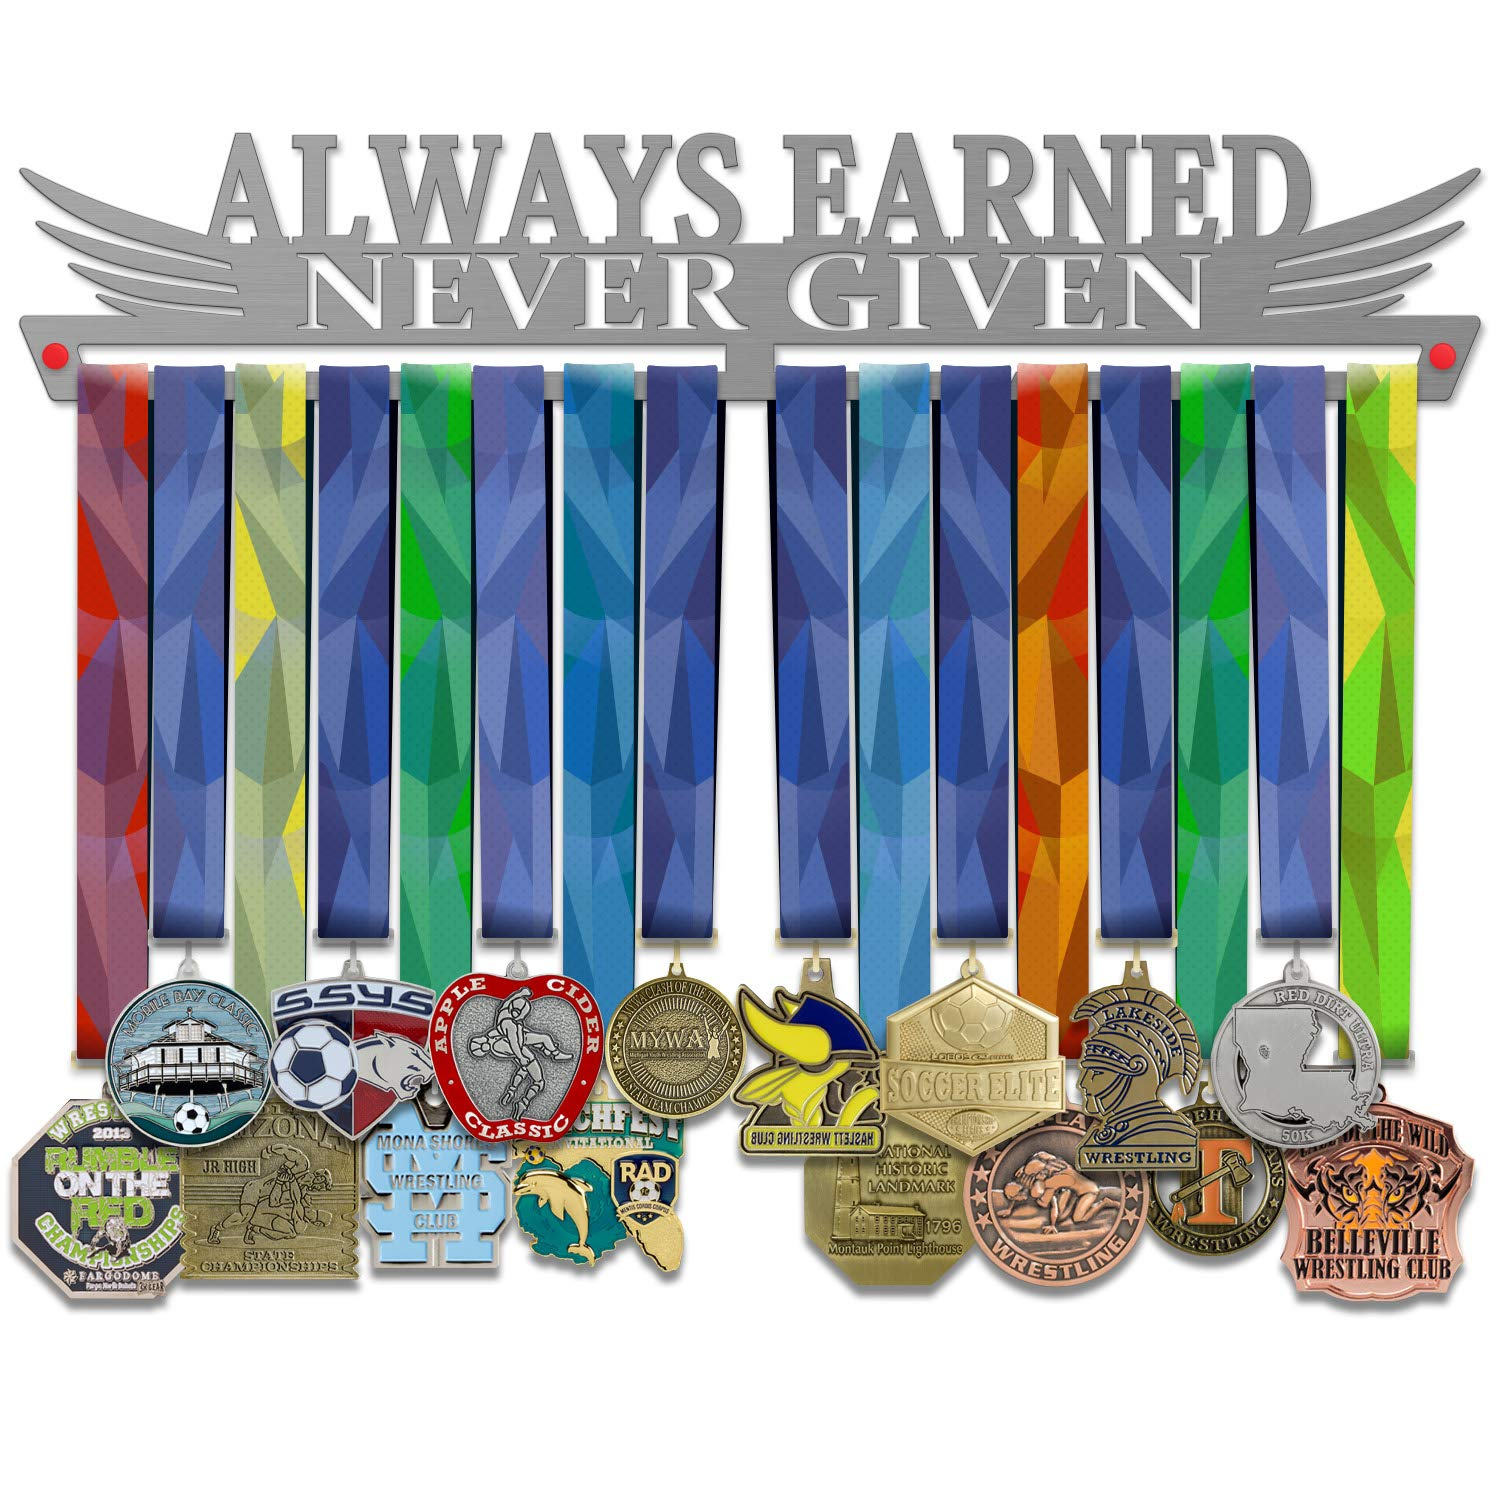 VICTORY HANGERS メダルディスプレイ 「Always Earned Never Given」メダルハンガー B07Q382Z6V  17.72 インチ